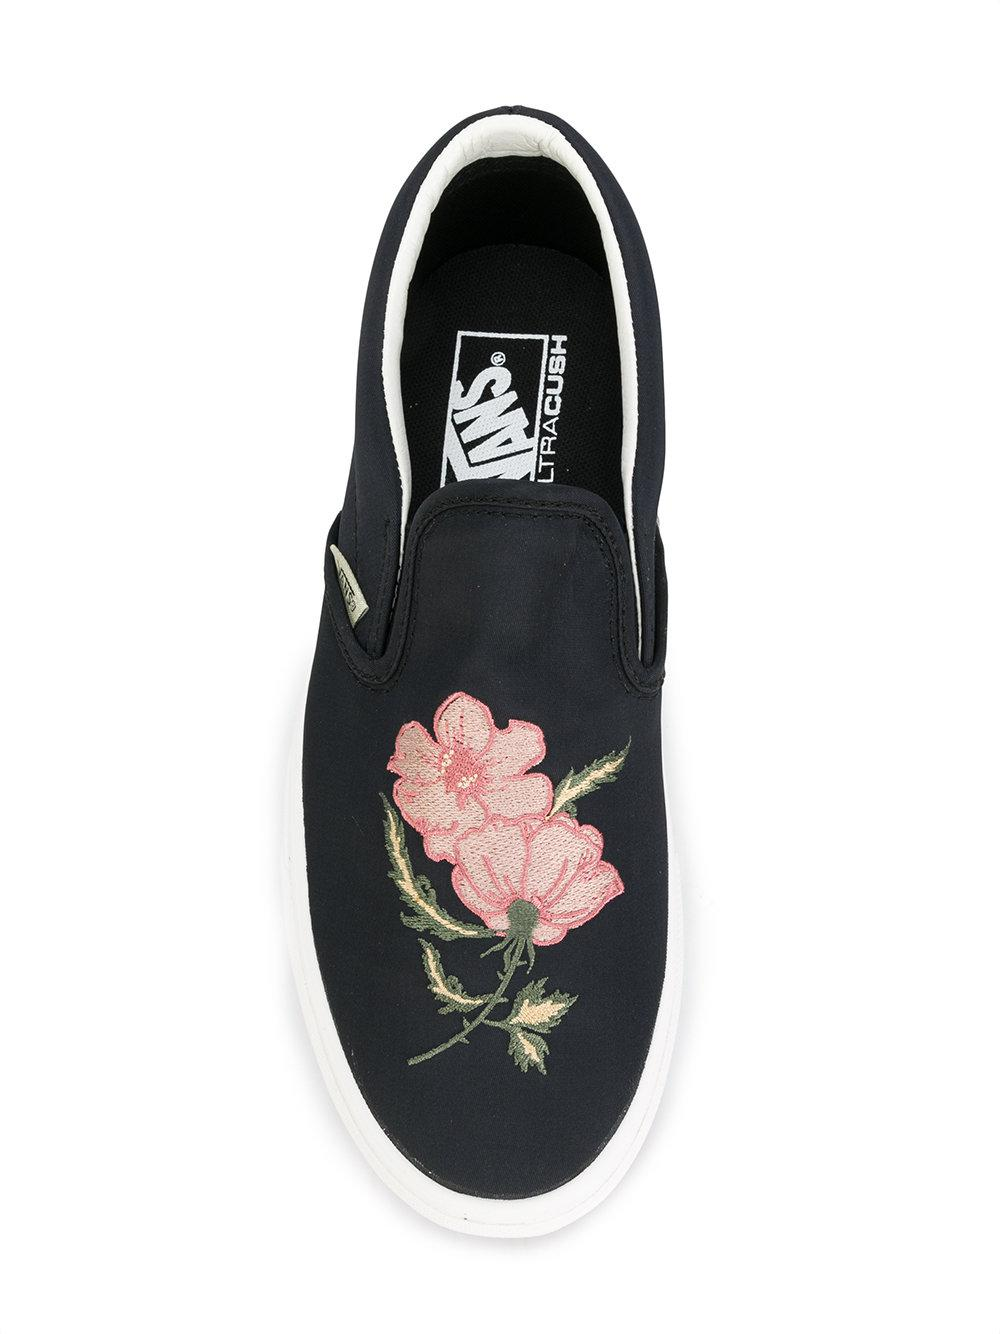 4b603be38b1e Lyst - Vans Embroidered Rose Sneakers in Black